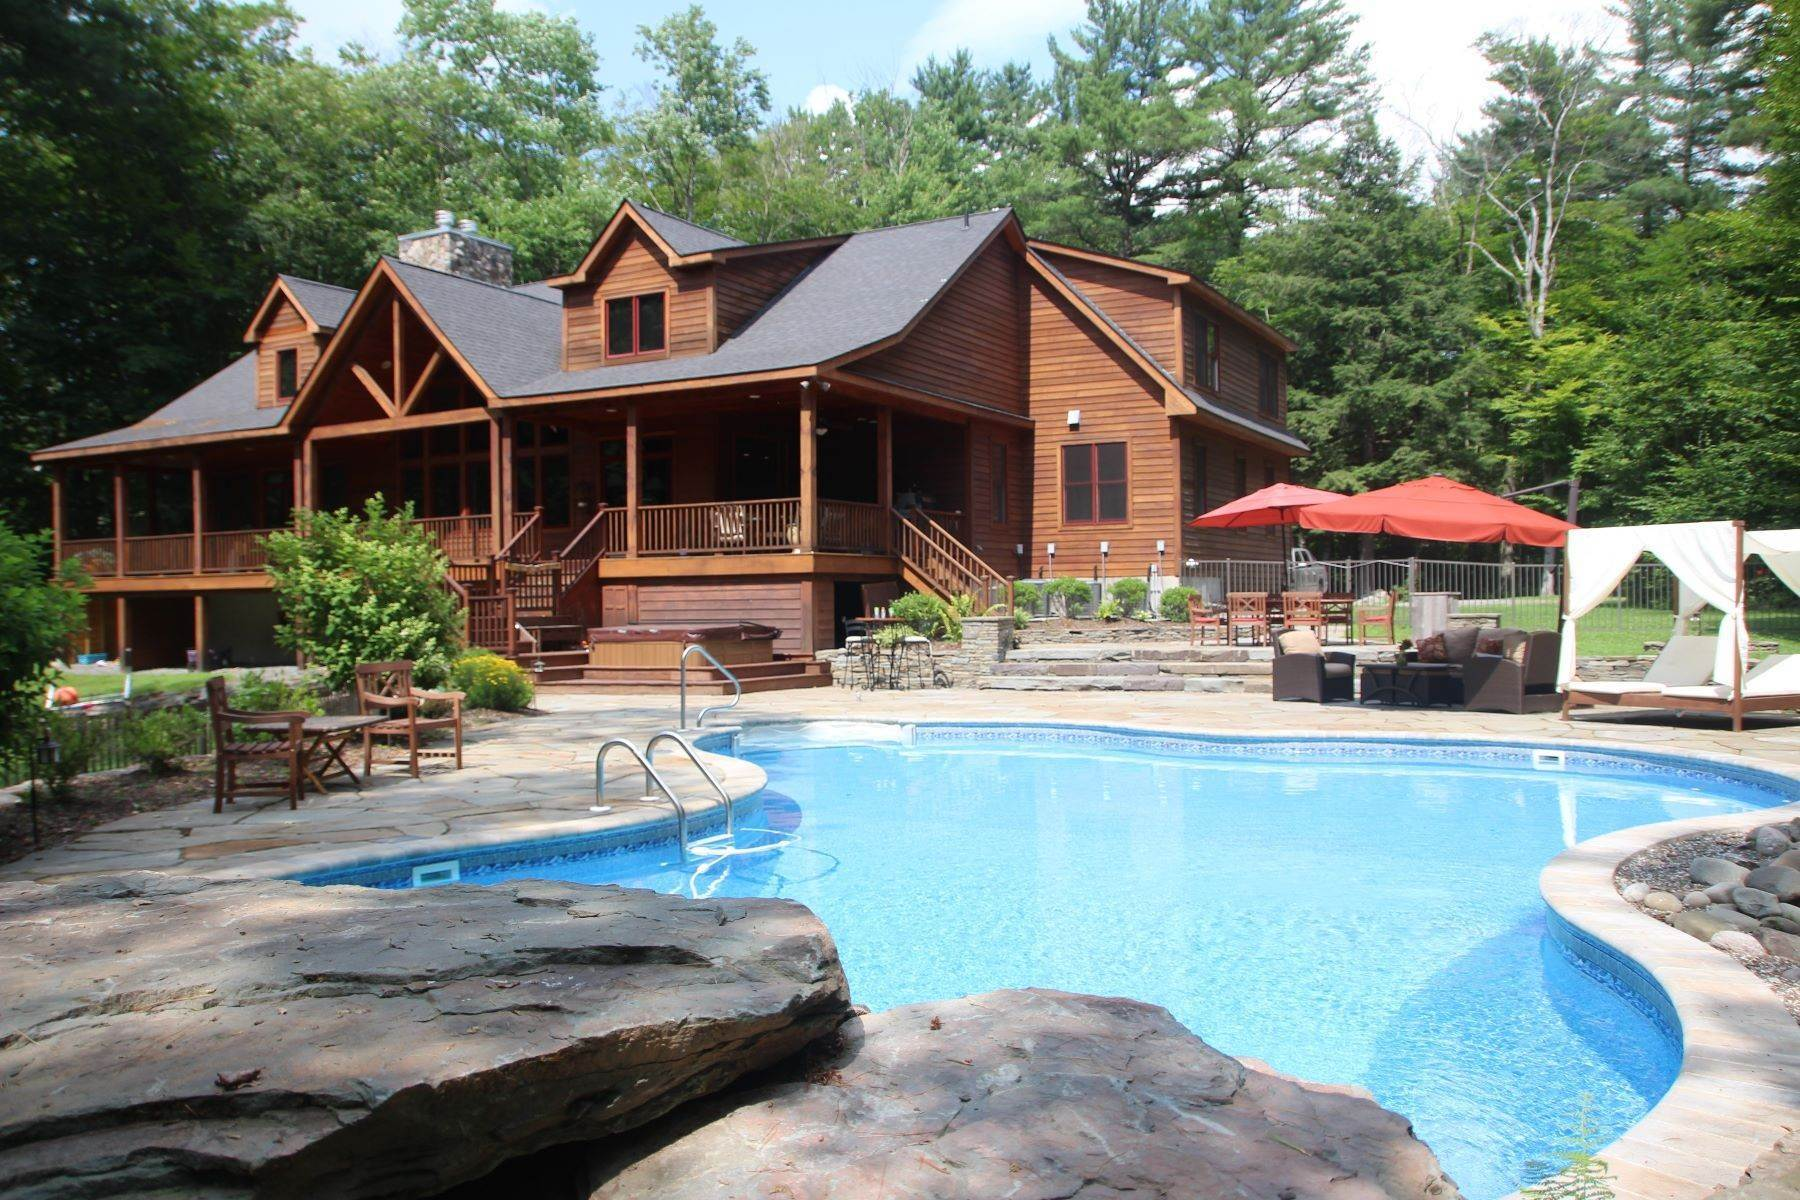 Property for Sale at Aspen Lodge at The Chapin Estate 252 Woodstone Trail Bethel, New York 12720 United States